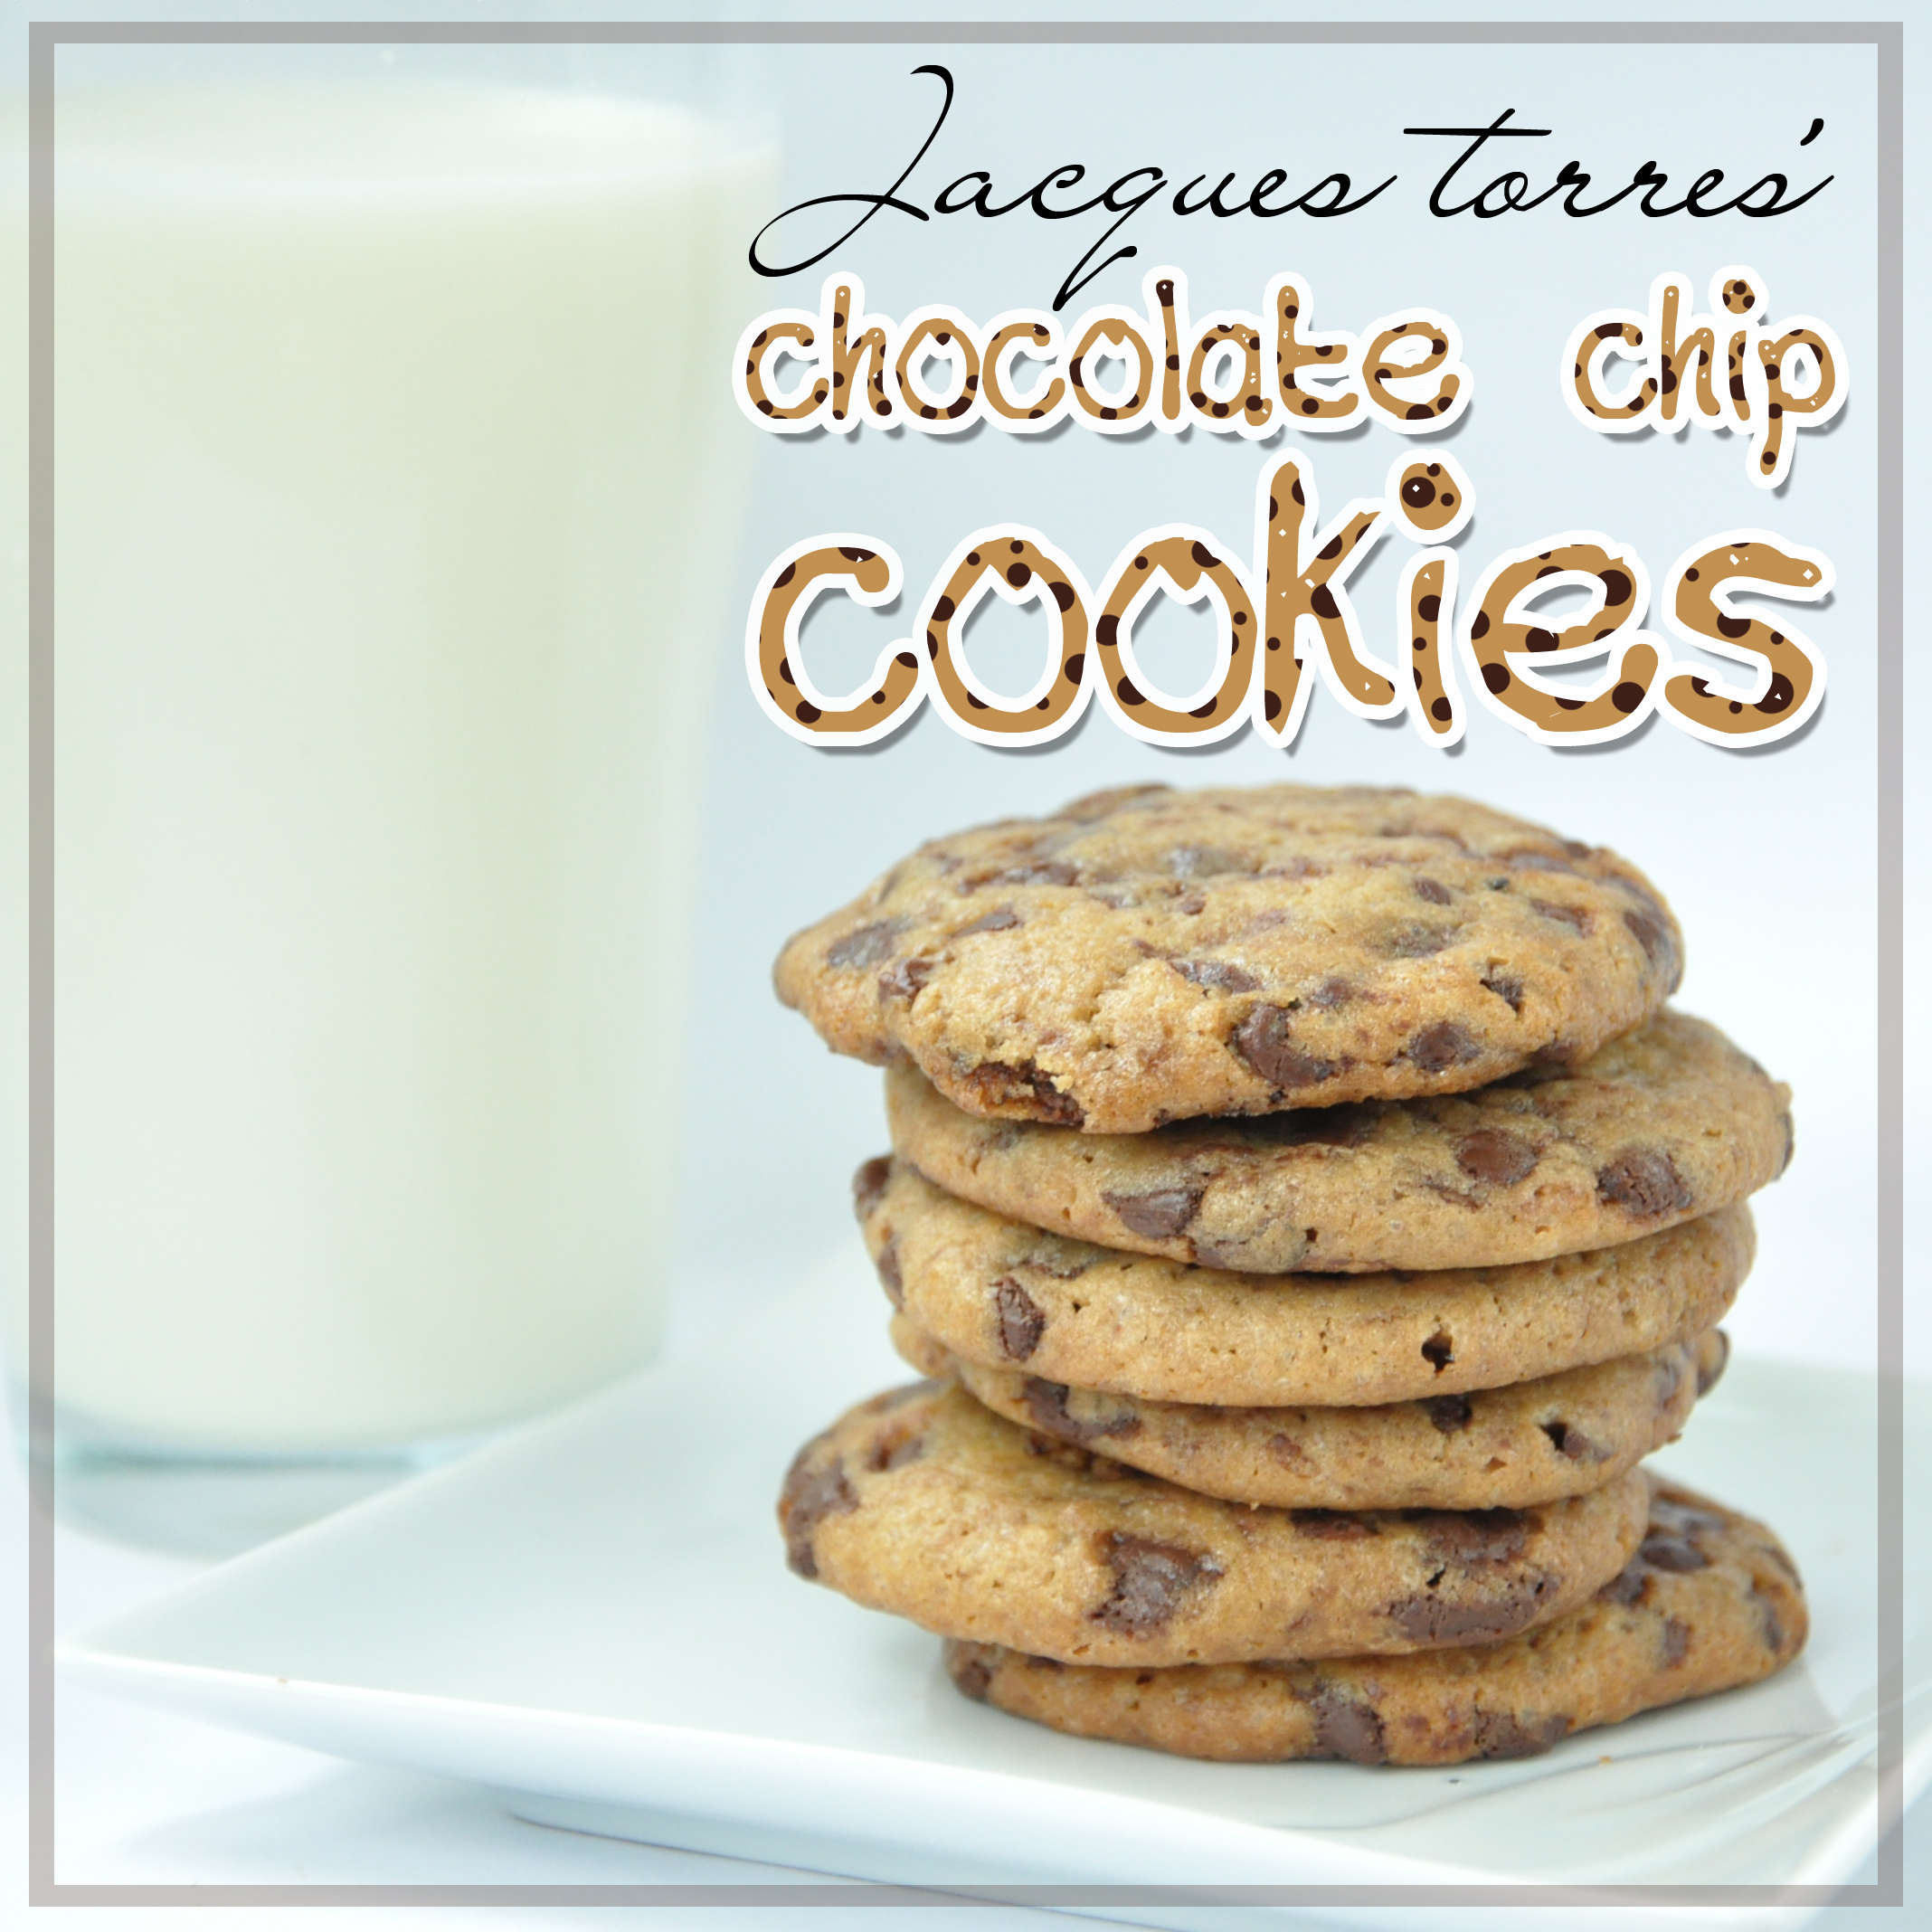 Jacques Torres' Chocolate Chips Cookies